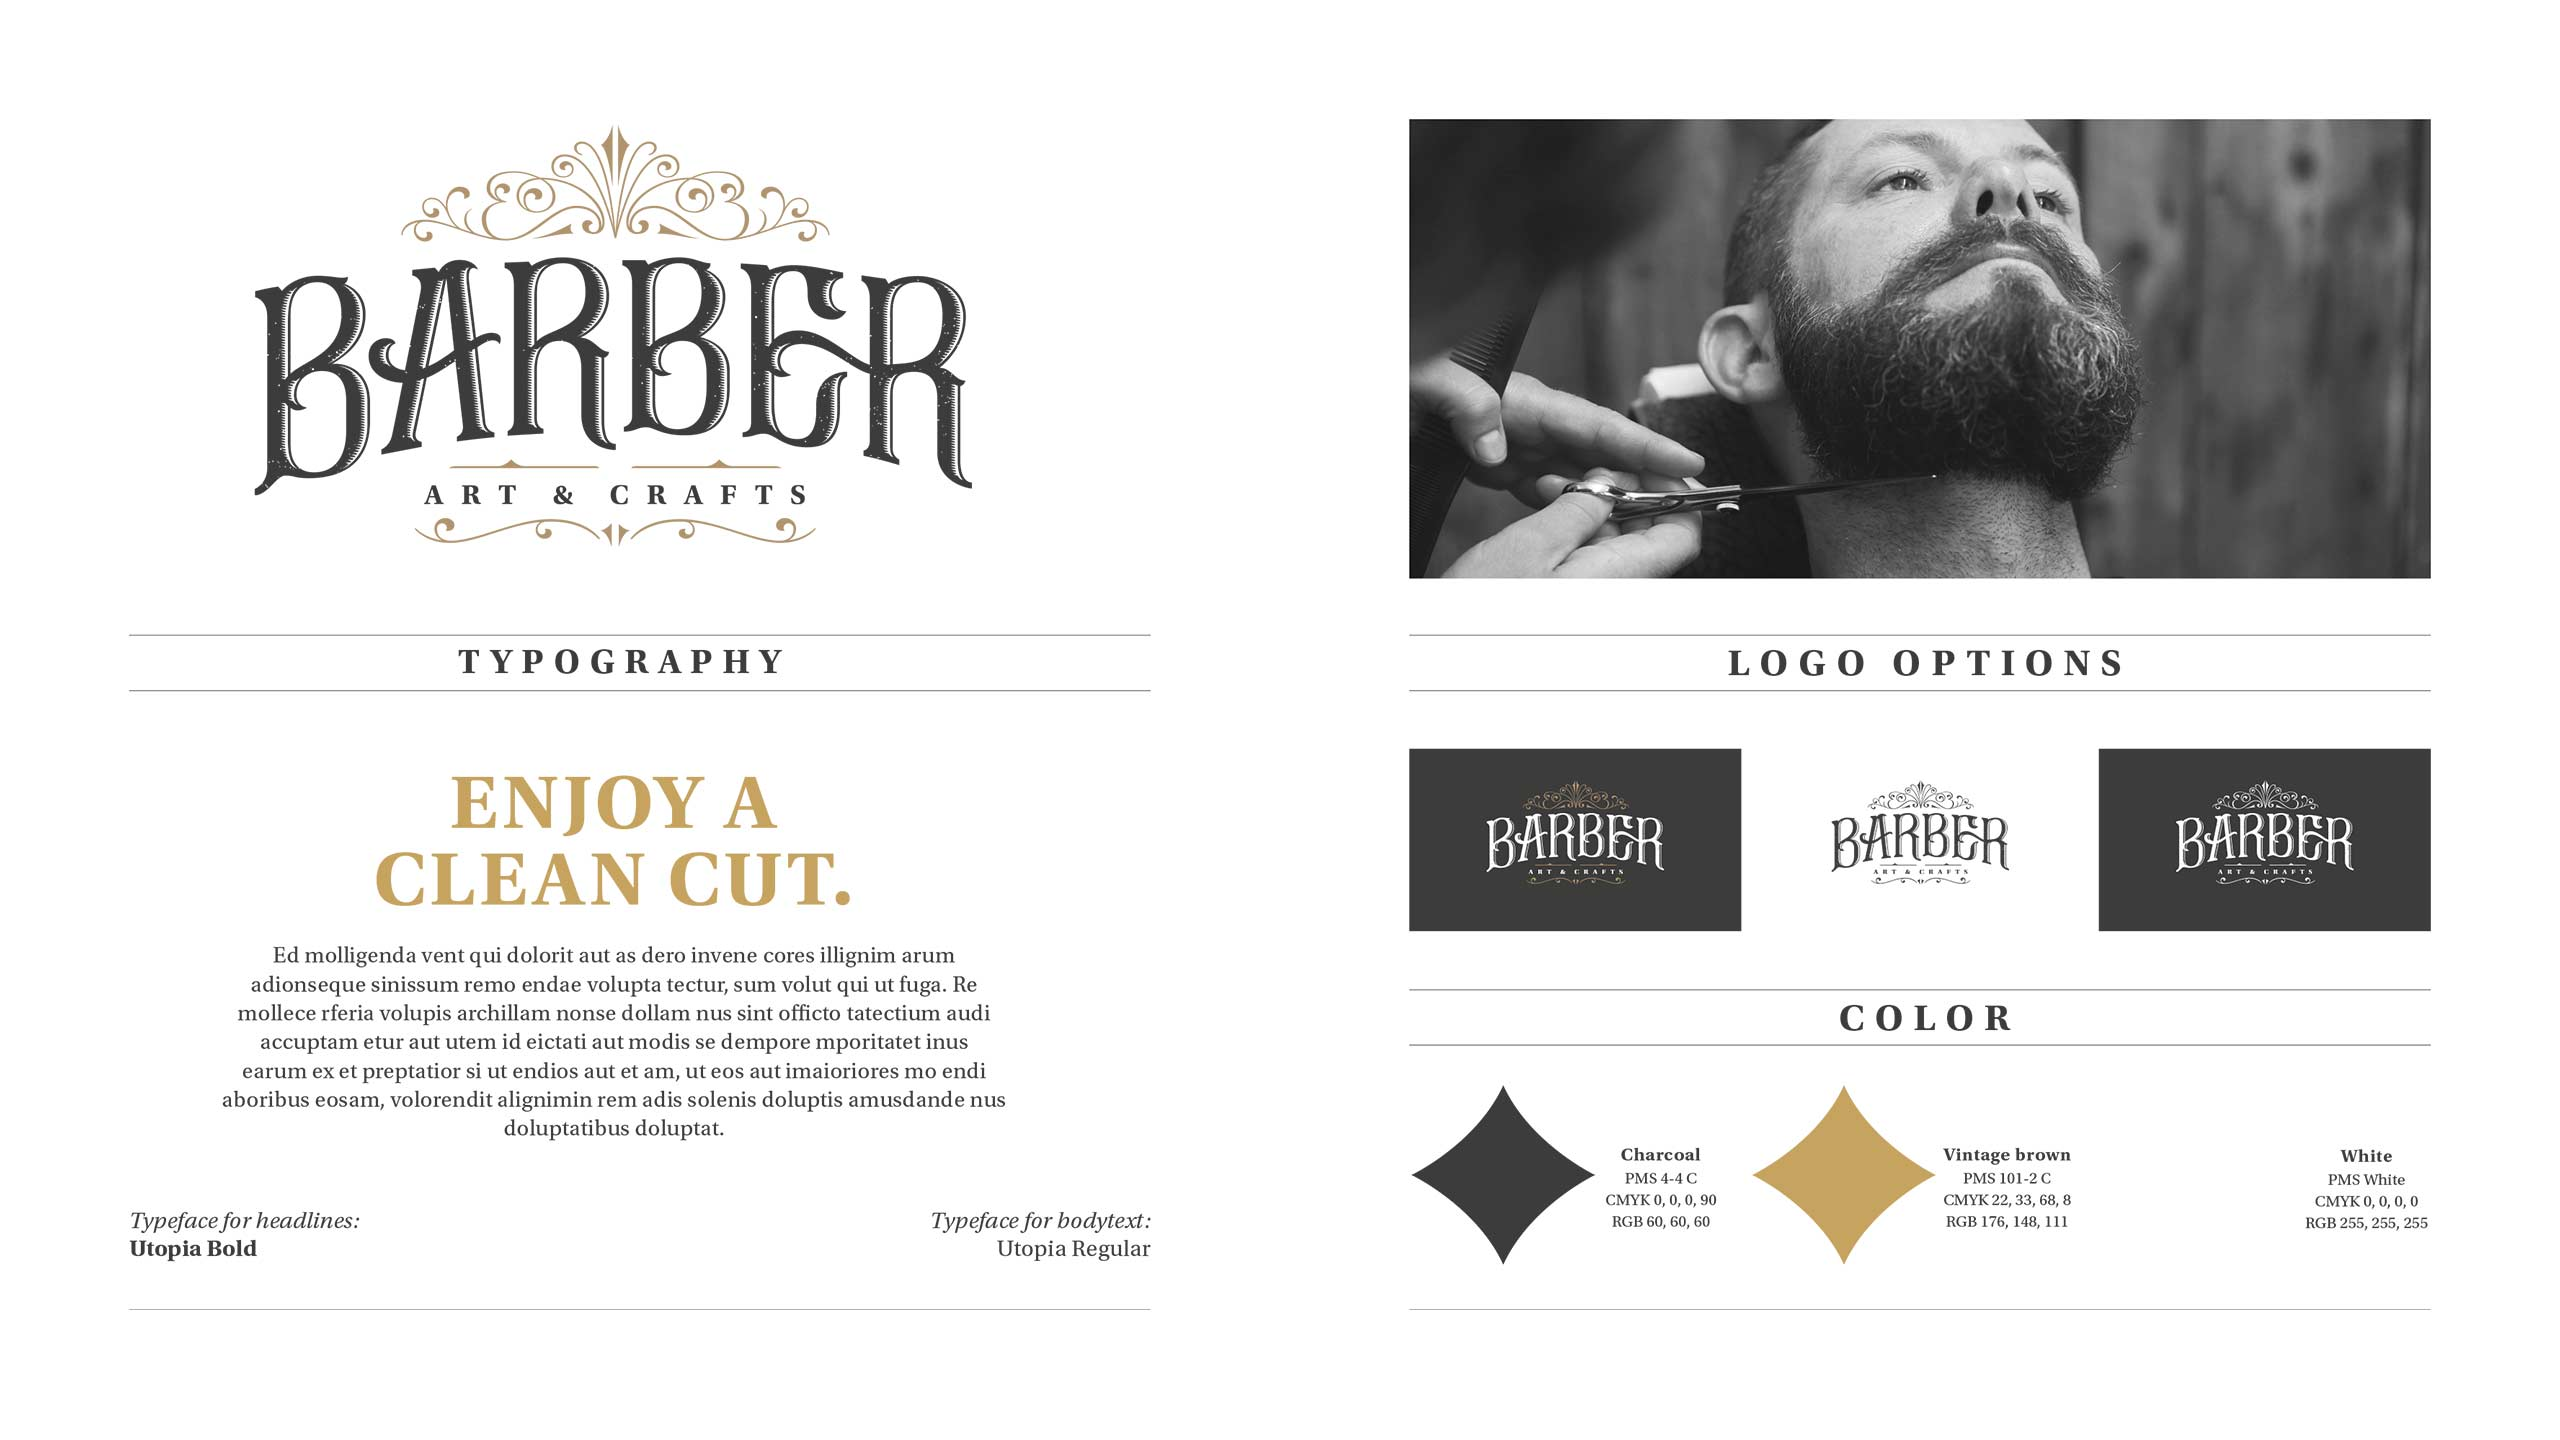 Visual identity overview for Barber Art & Crafts